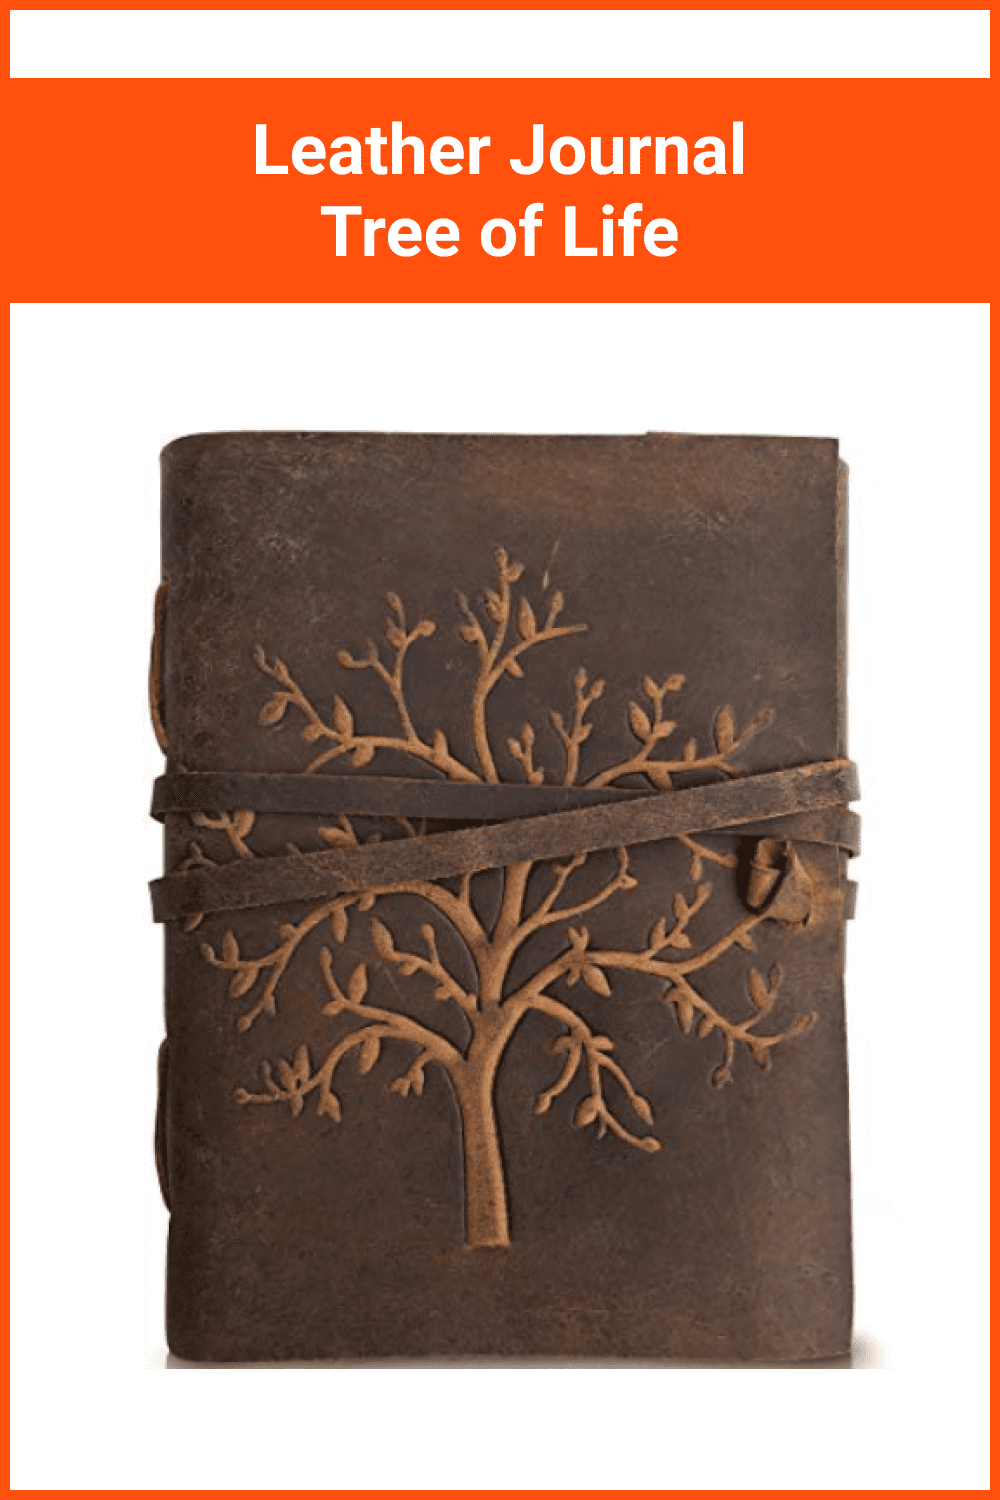 Leather Journal Tree of Life.